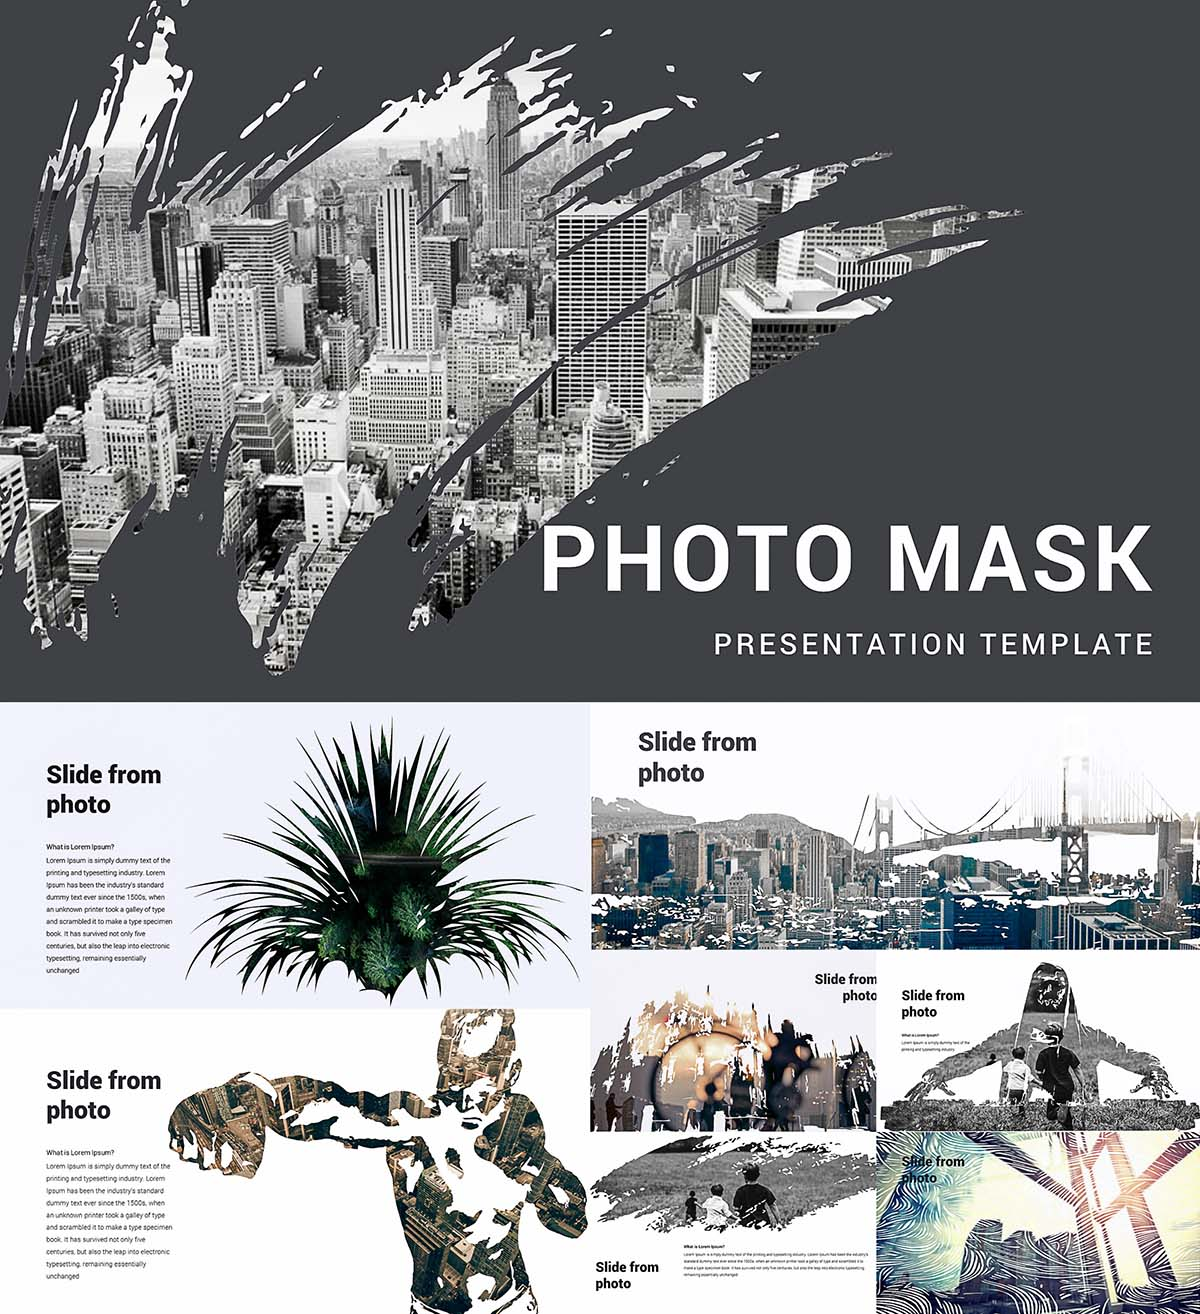 Photo mask powerpoint template free download photo mask powerpoint template toneelgroepblik Choice Image